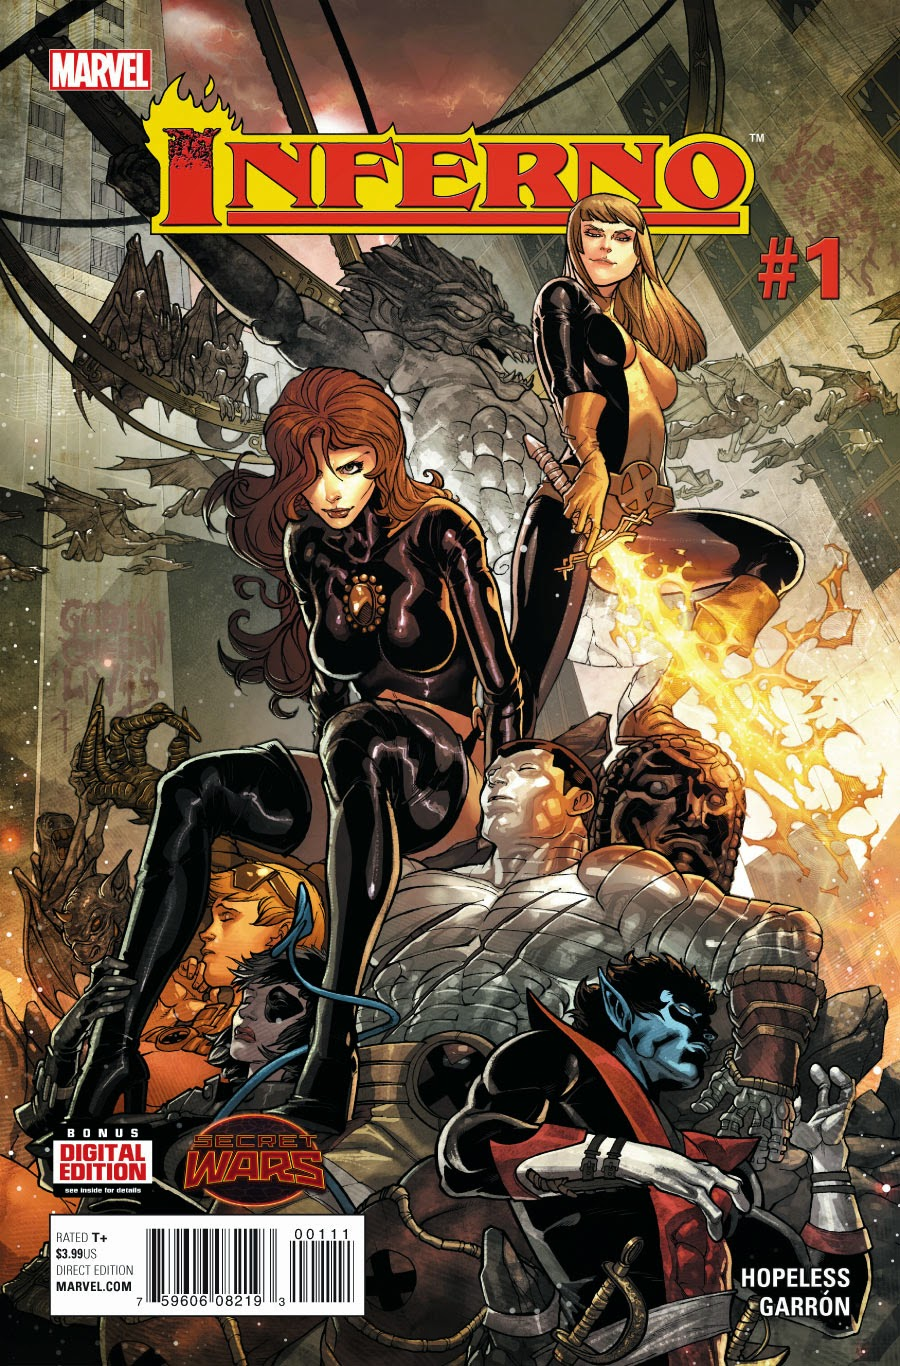 Secret Wars: Inferno #1